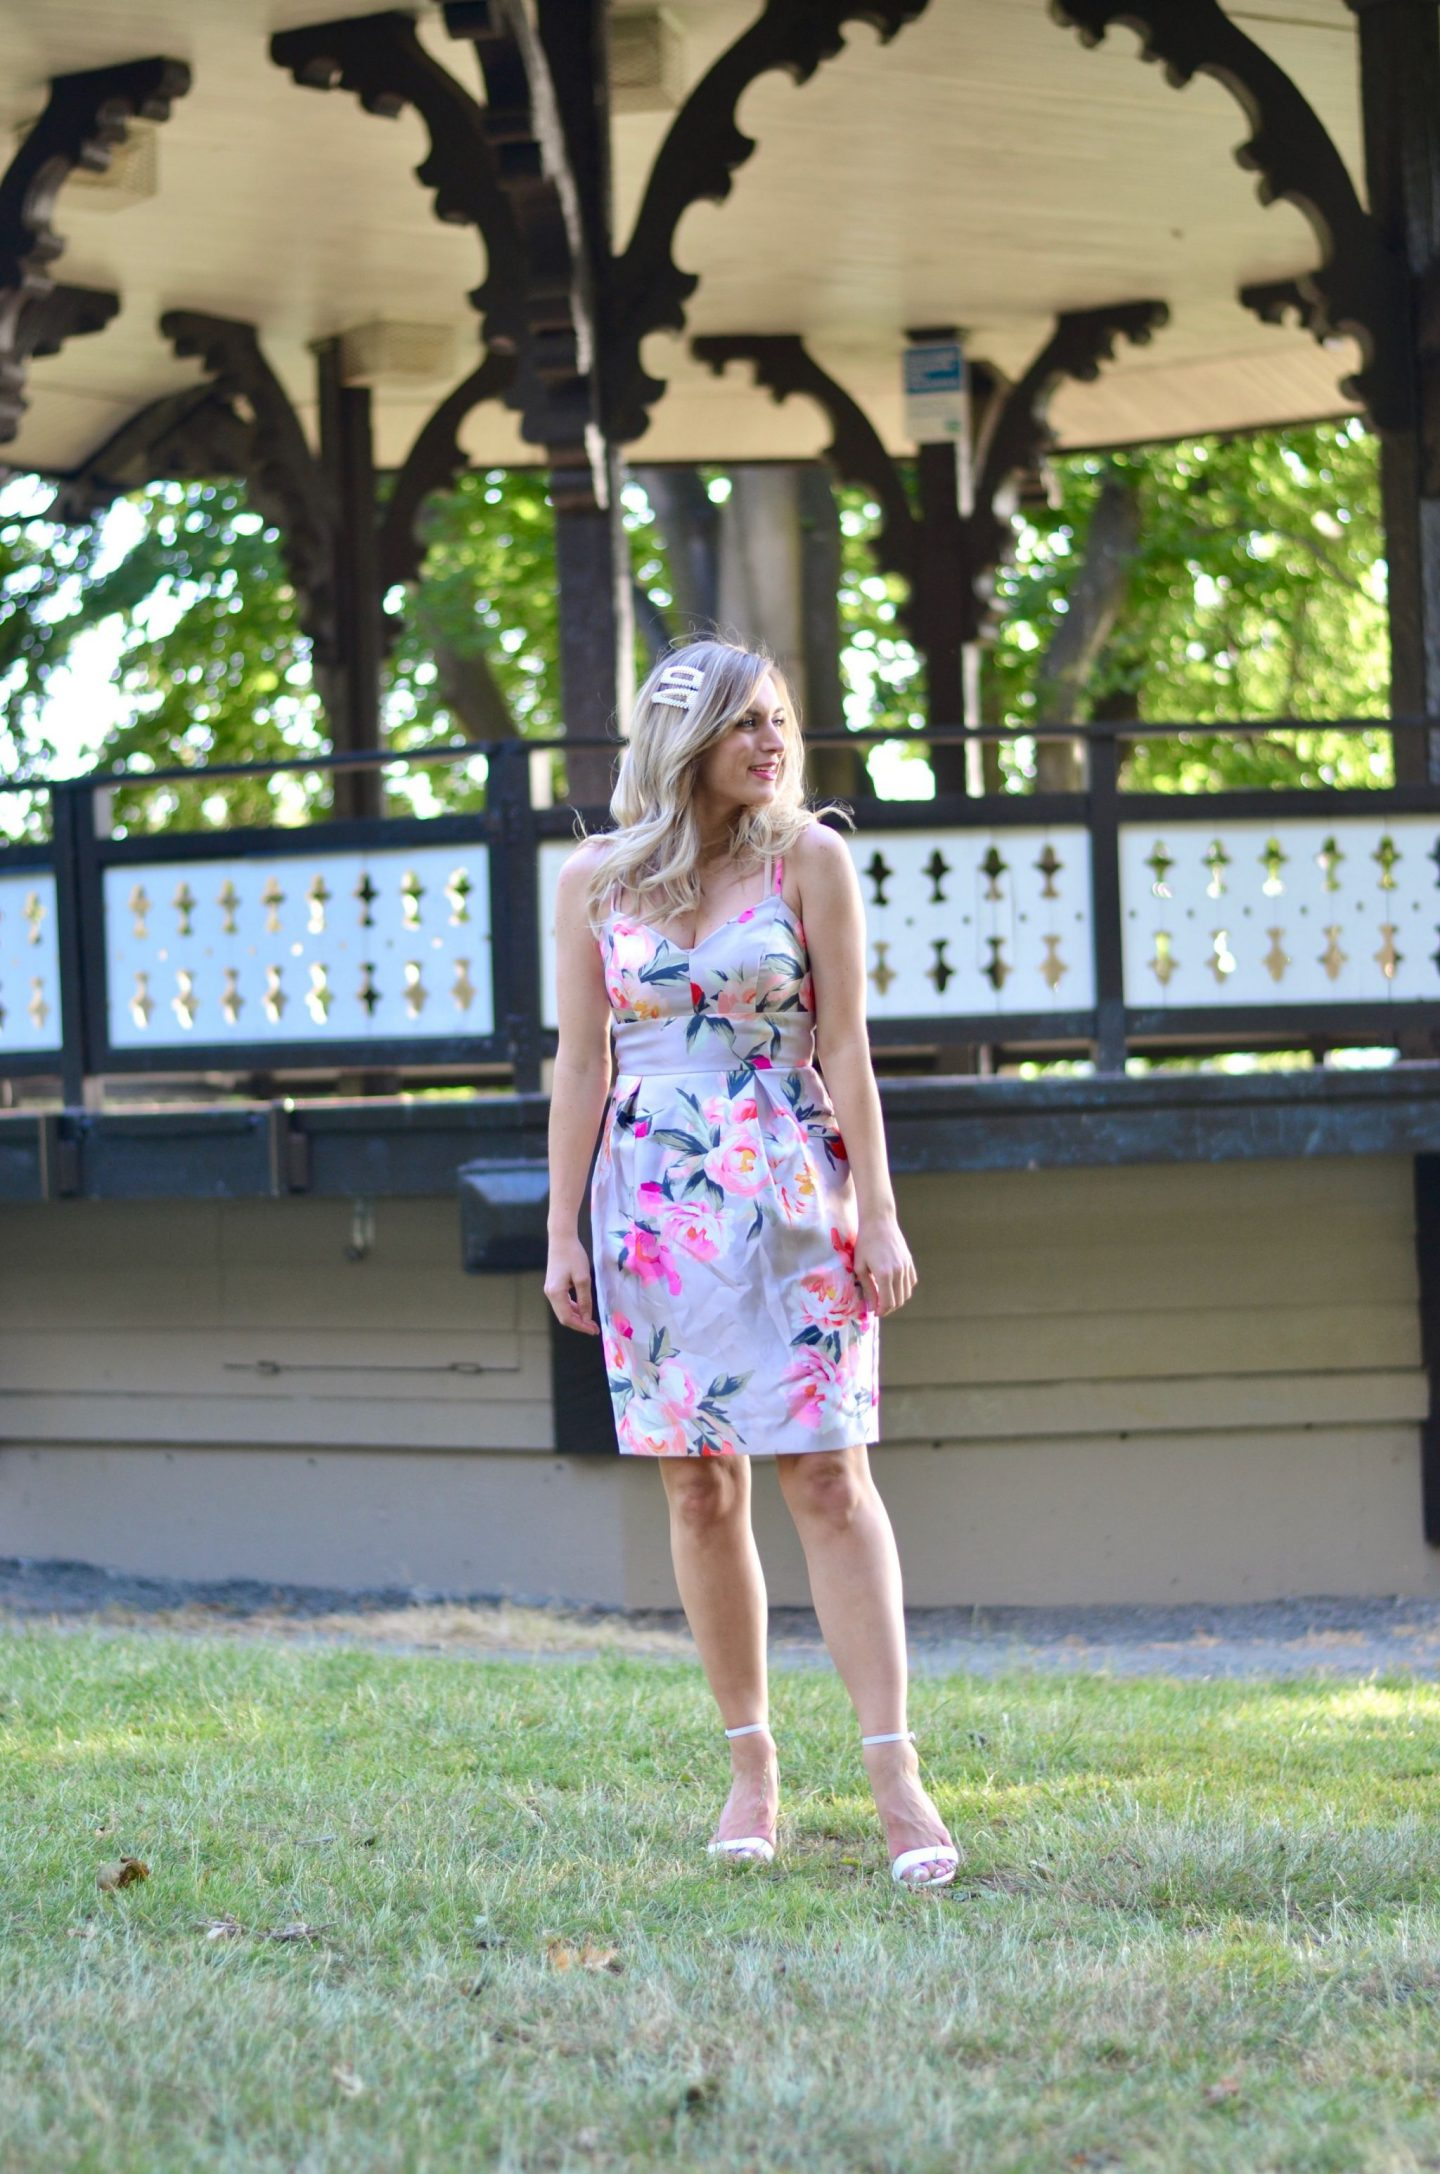 wedding guest dress idea legallee blonde wearing floral cocktail dress